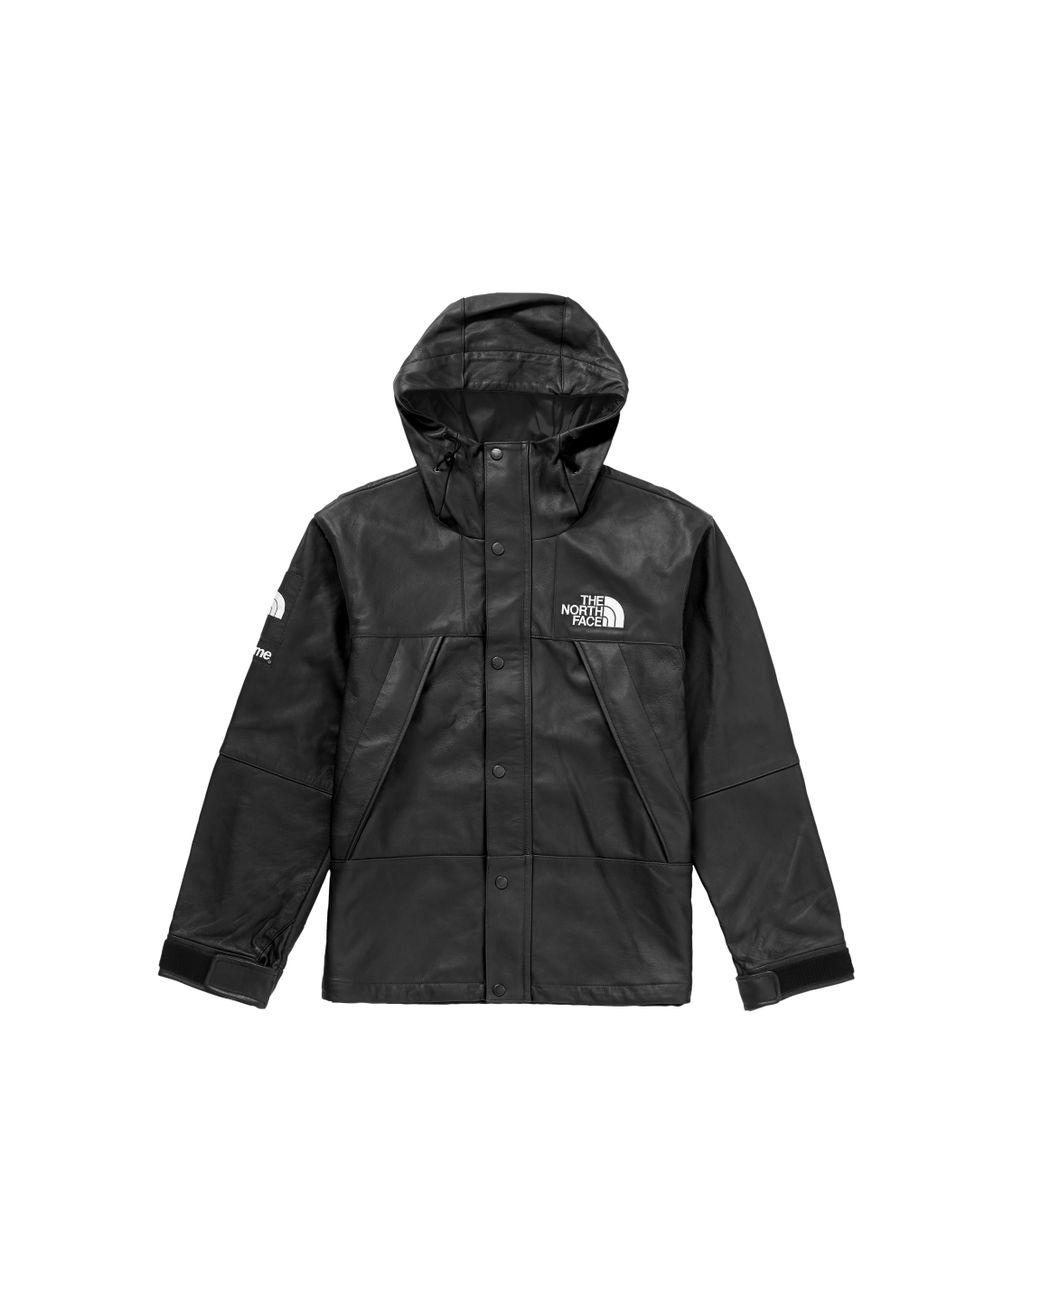 dadc68f4 Supreme The North Face Leather Mountain Parka Black in Black for Men - Lyst